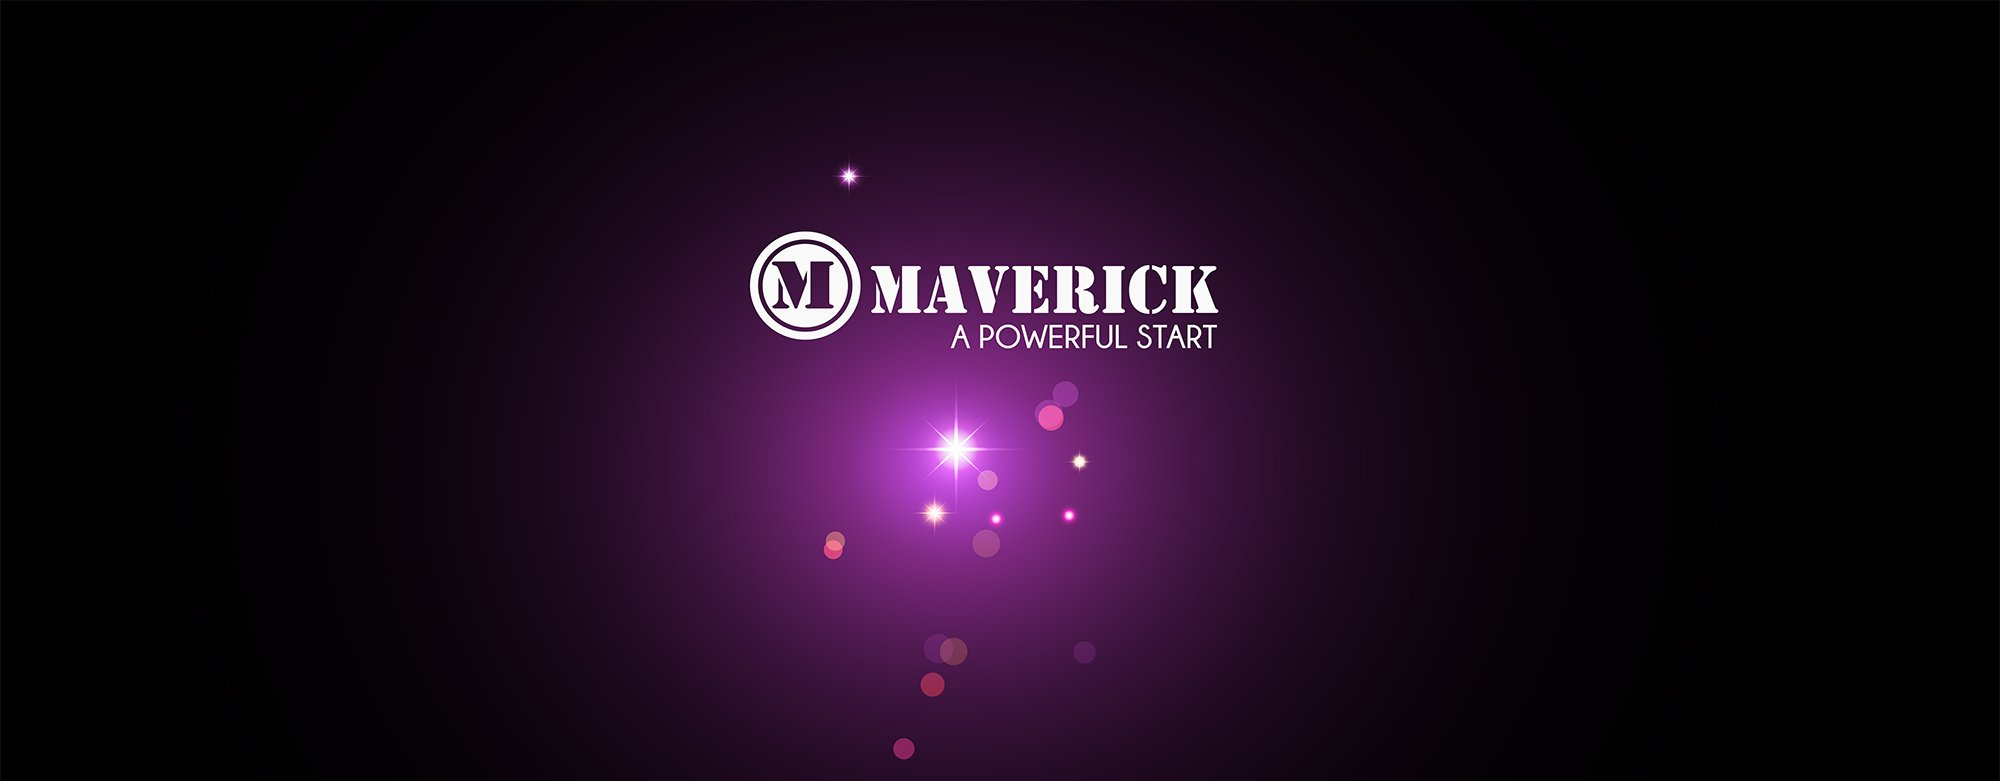 Maverick Technology Distributors Ltd